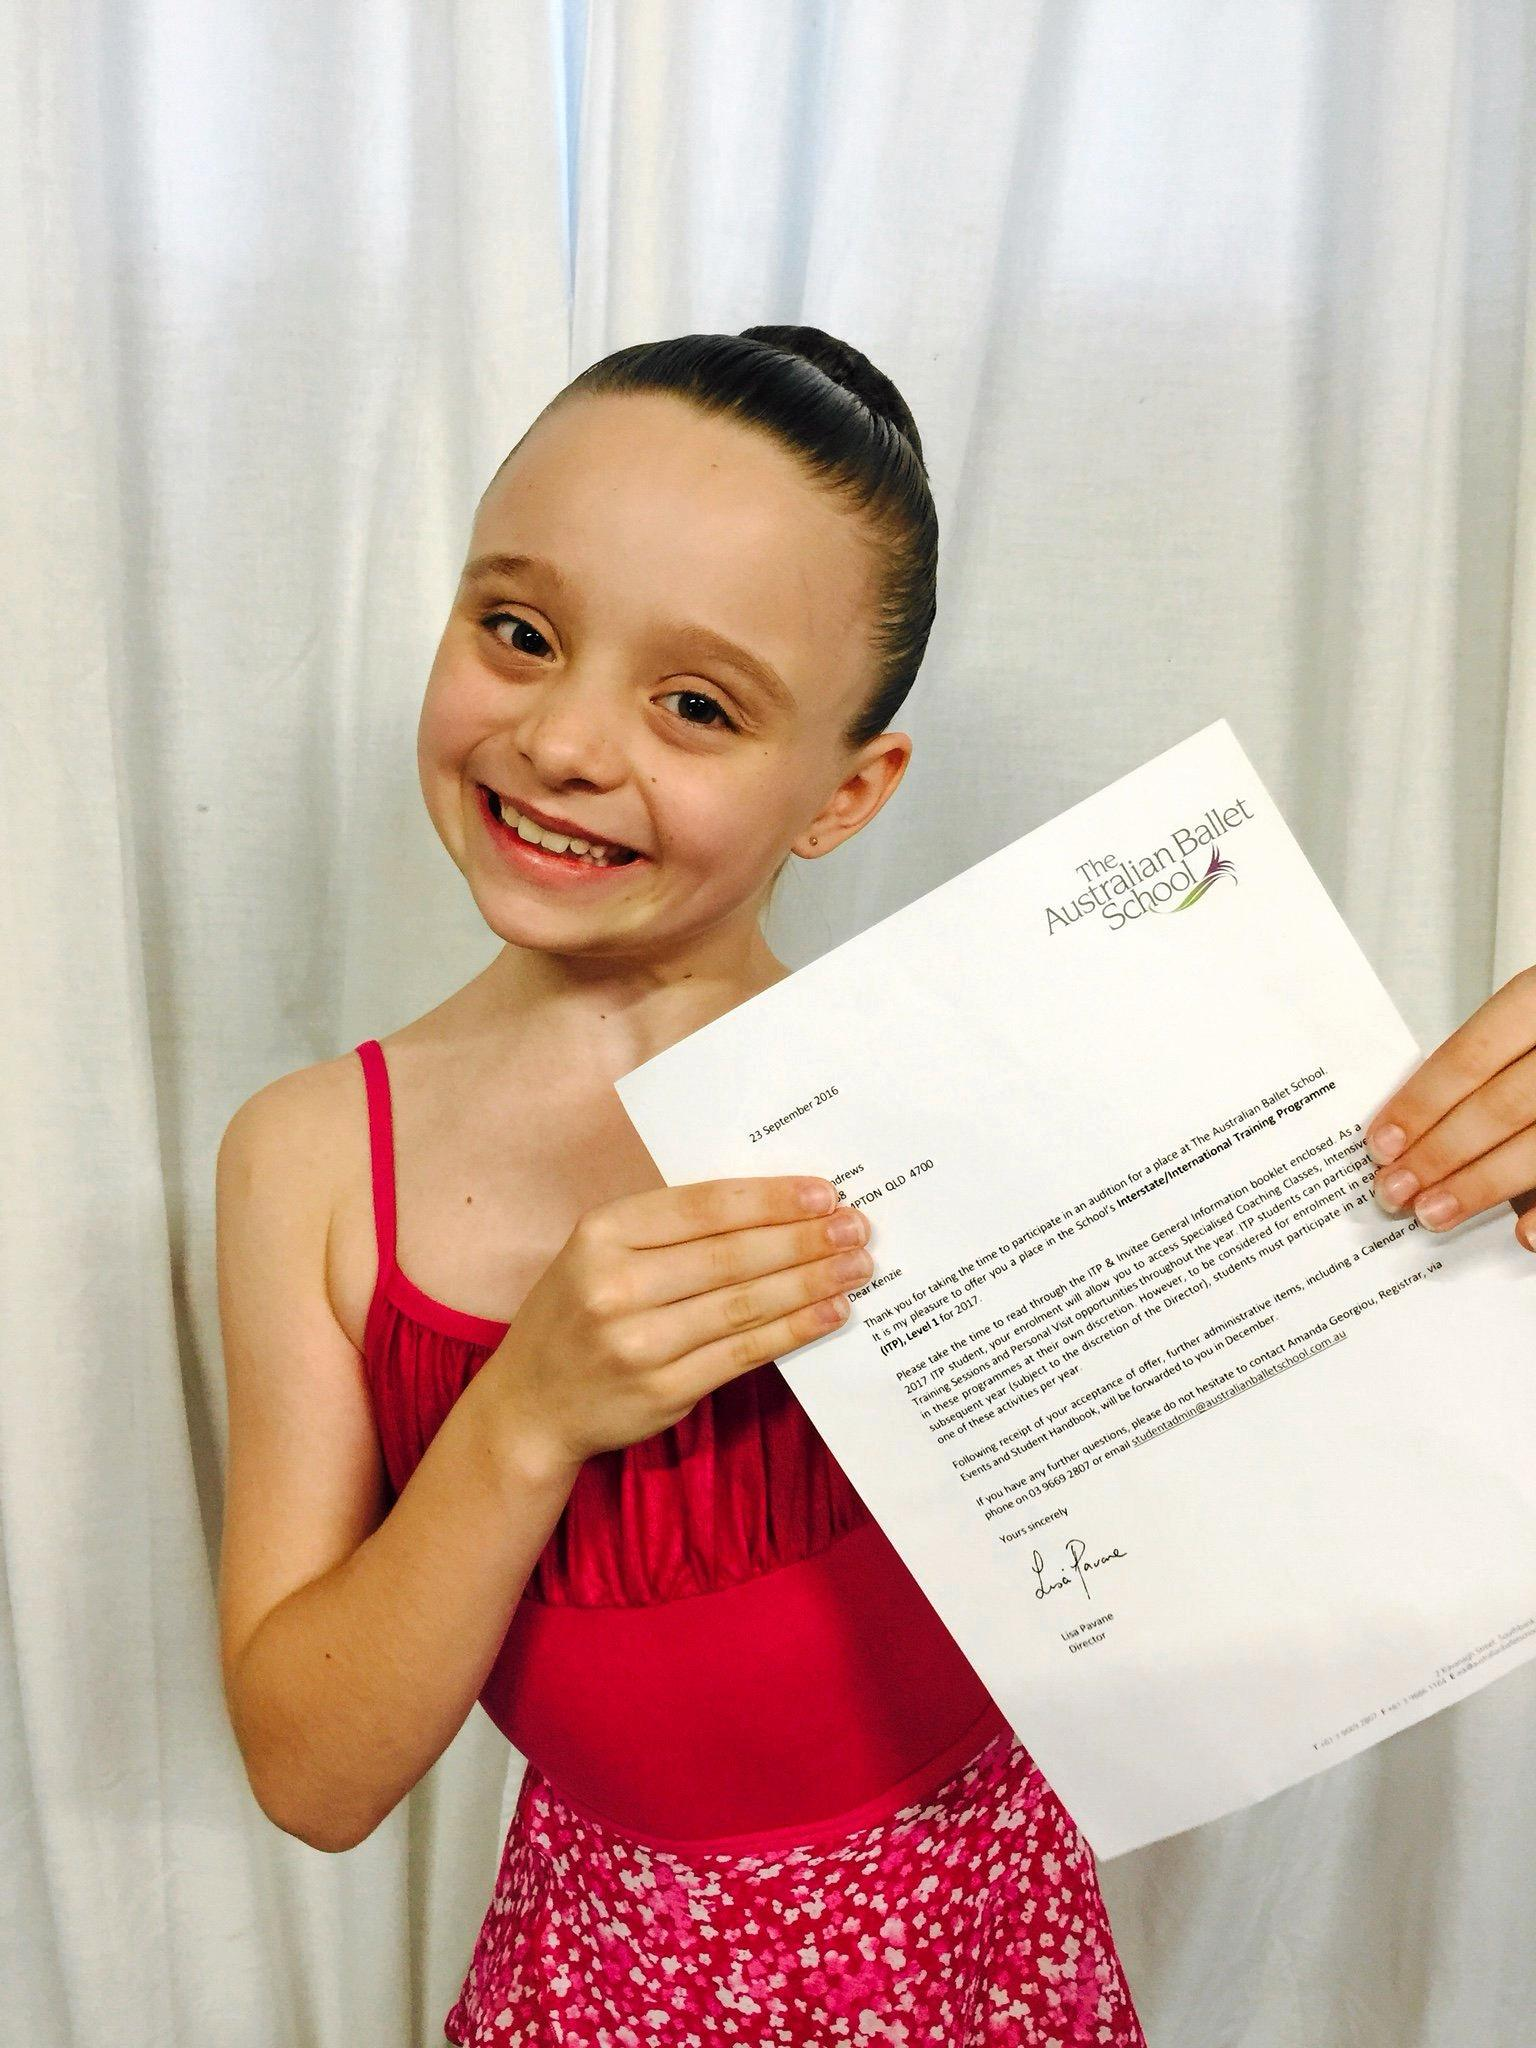 Kenzie Andrews received a place in the Australian Ballet School's Interstate/International Training Program (ITP).